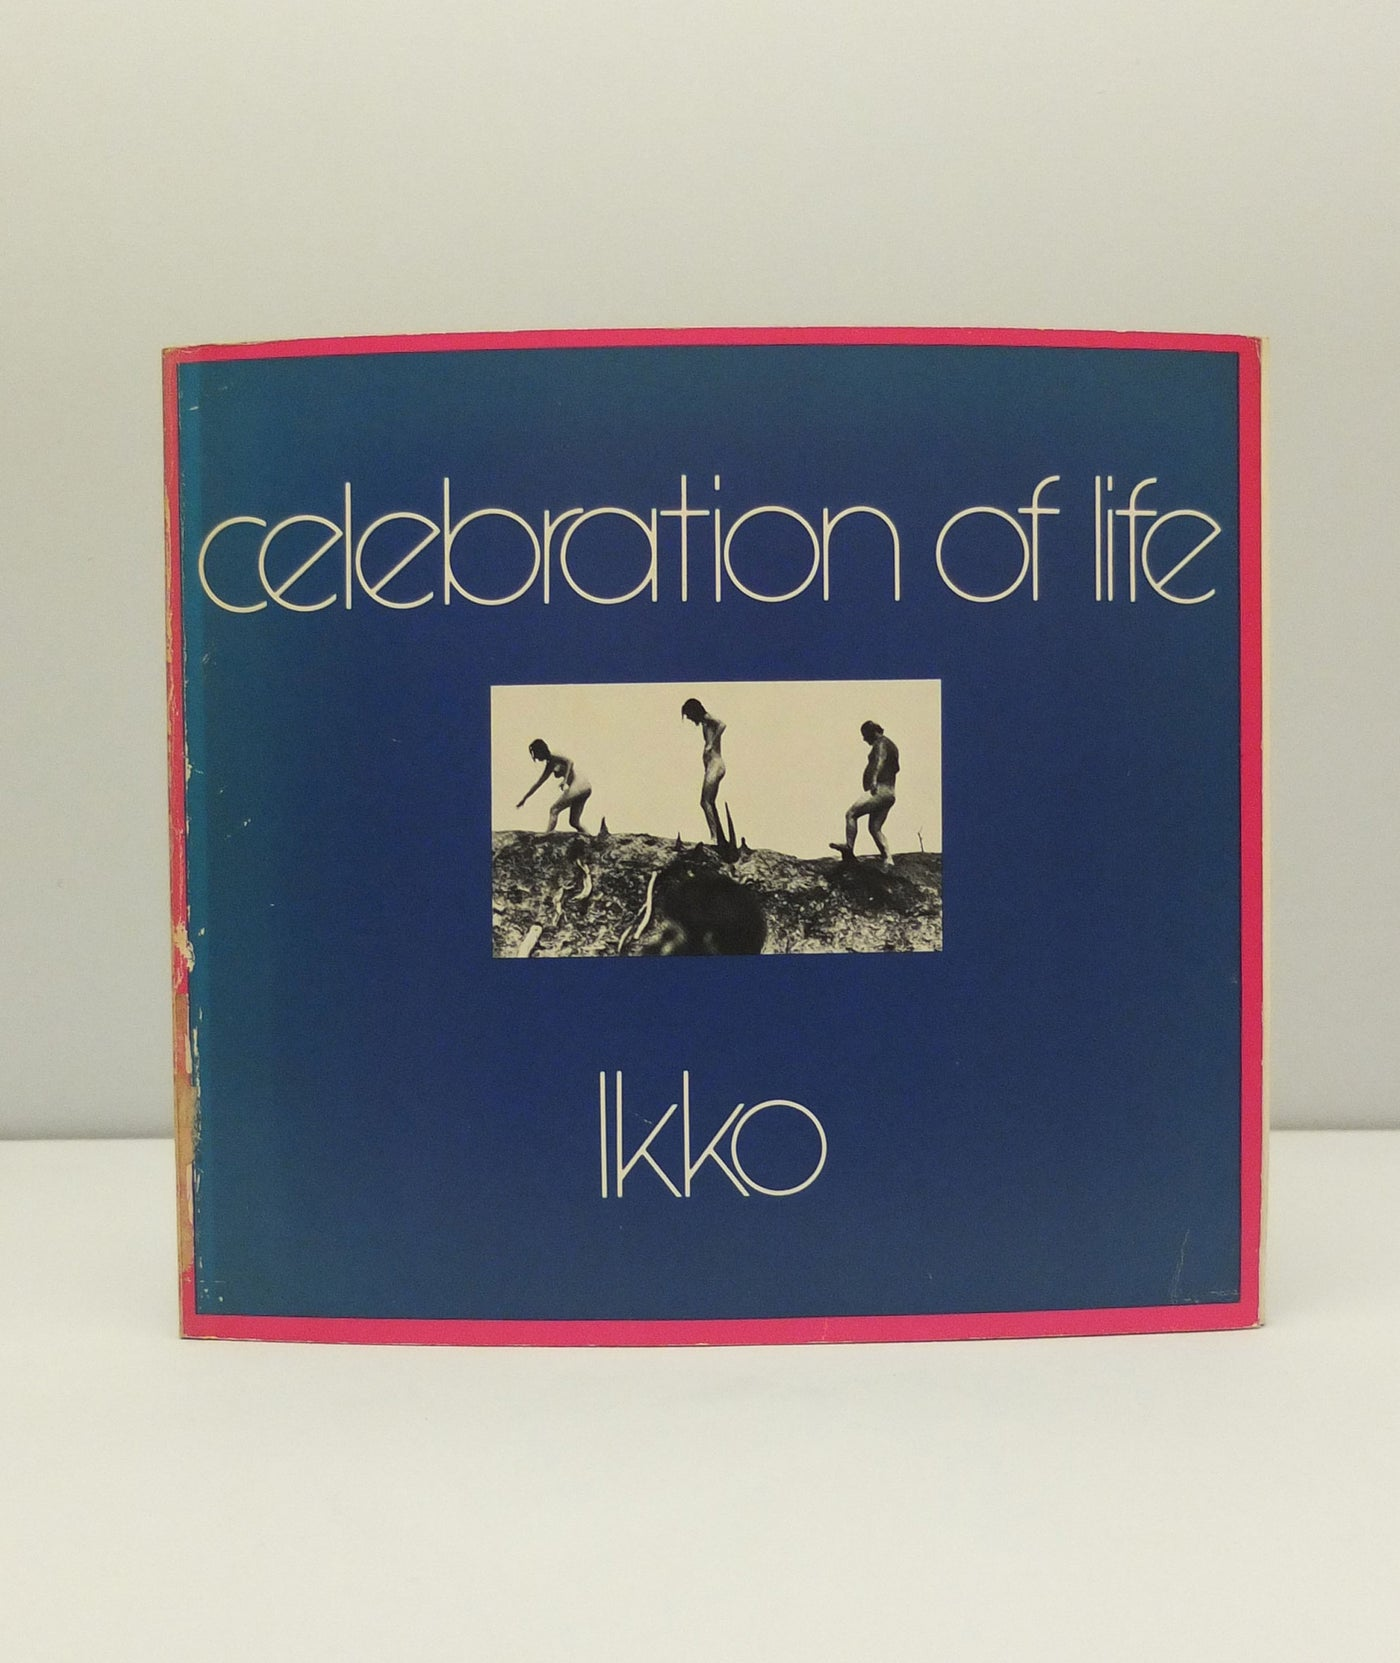 Celebration of Life by Ikko Narahara}